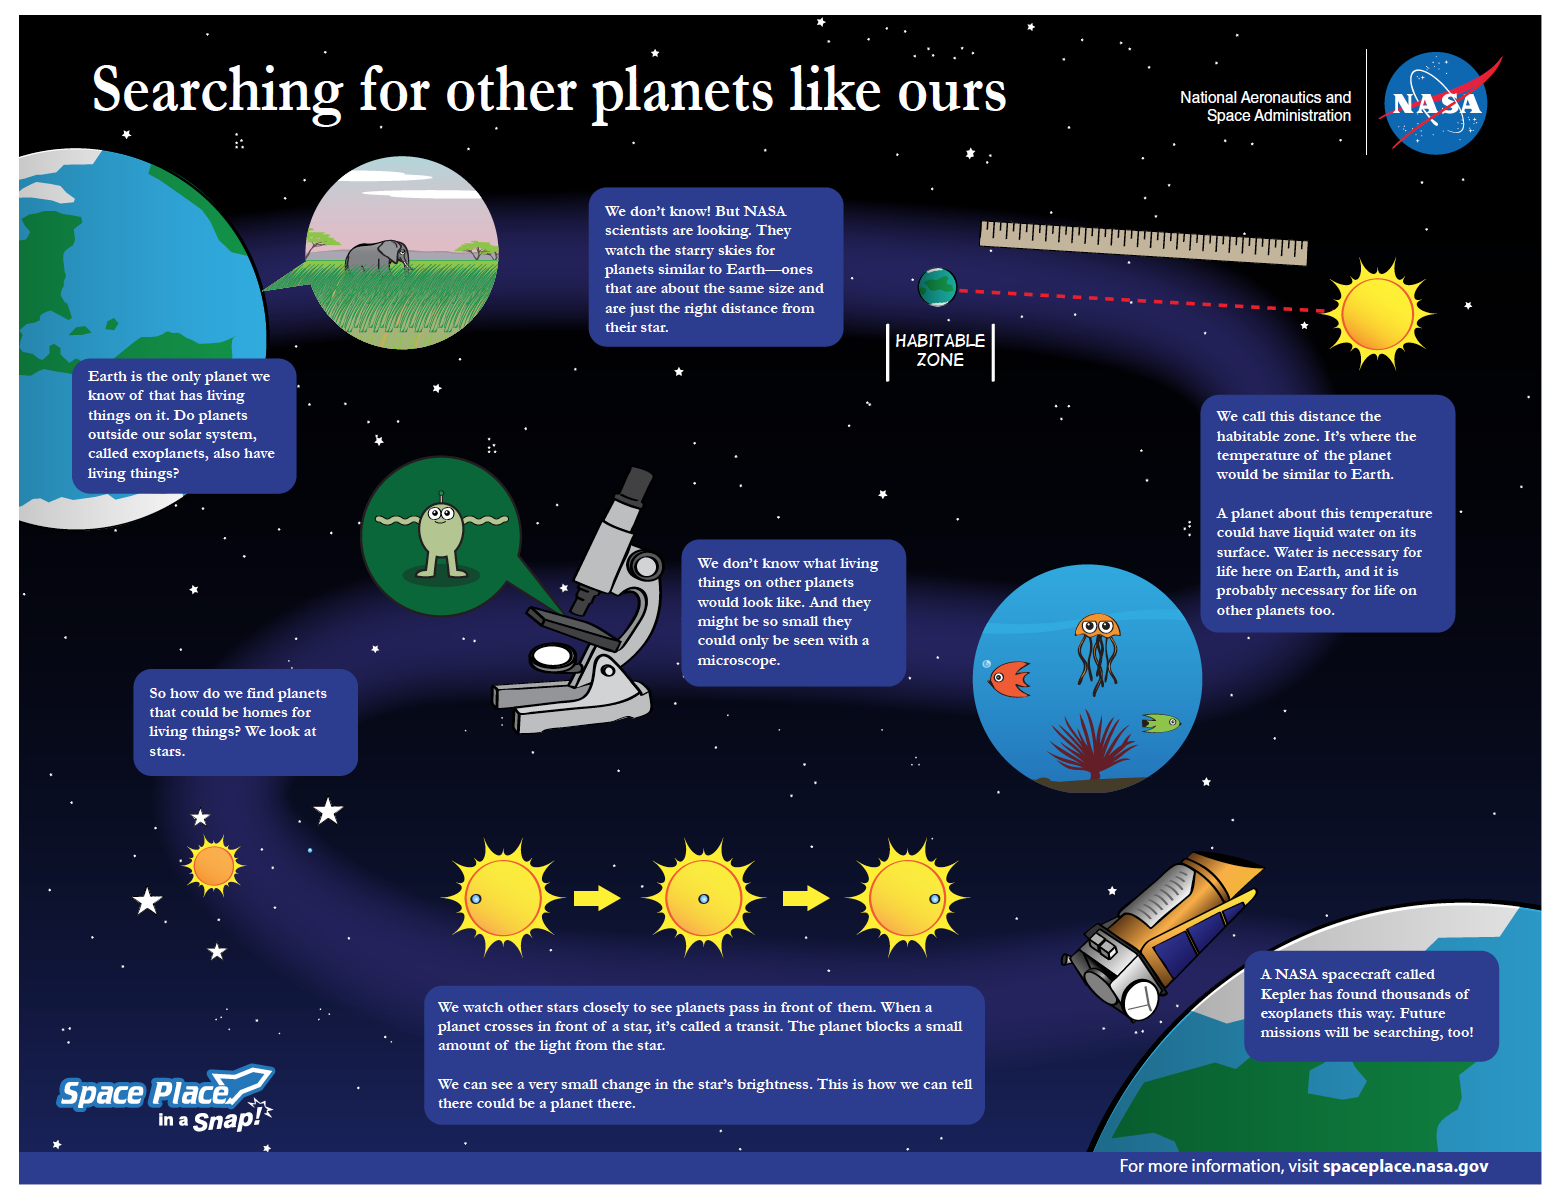 Searching for other planets like ours :: NASA Space Place